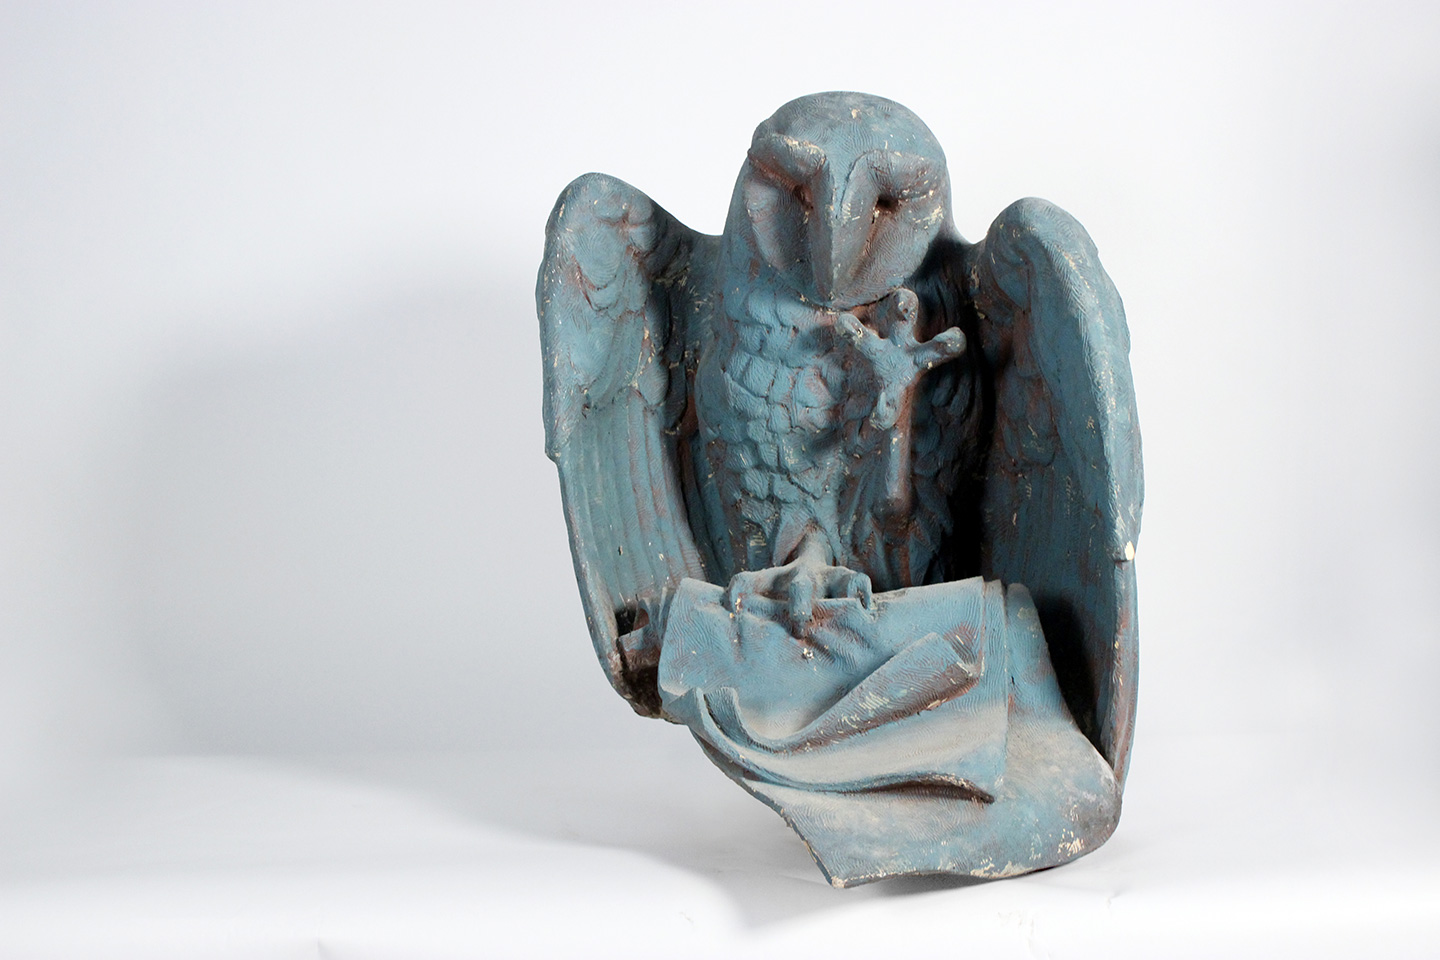 Owl maquette my Raymond Kaskey for the Chicago Public Library.